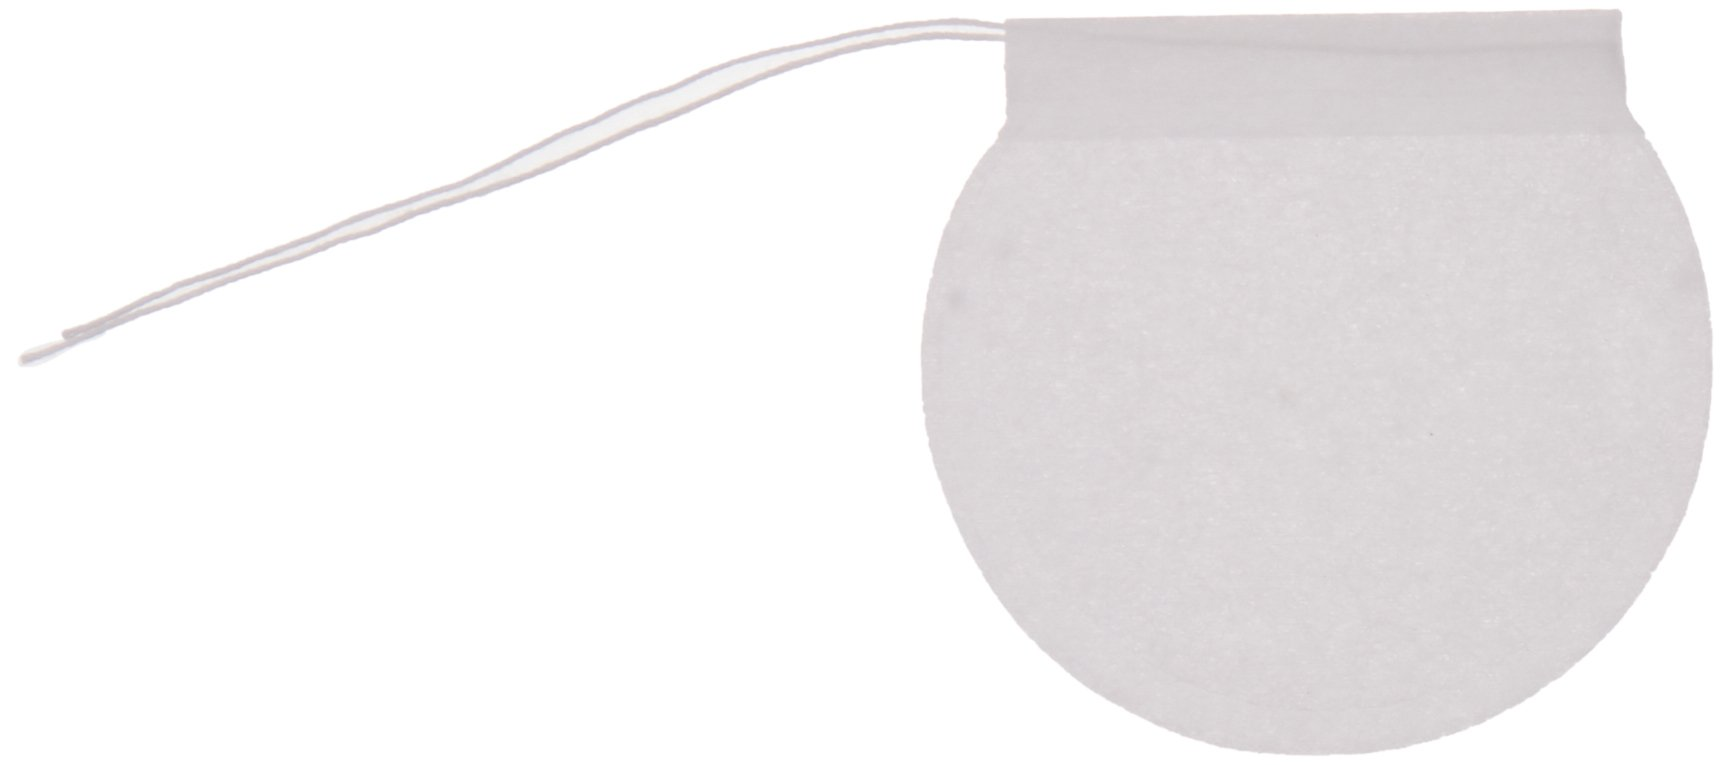 Special Tea 200 Count Round Empty Tea Bags with Draw String Closure, 2.25'' x 2.5'', White